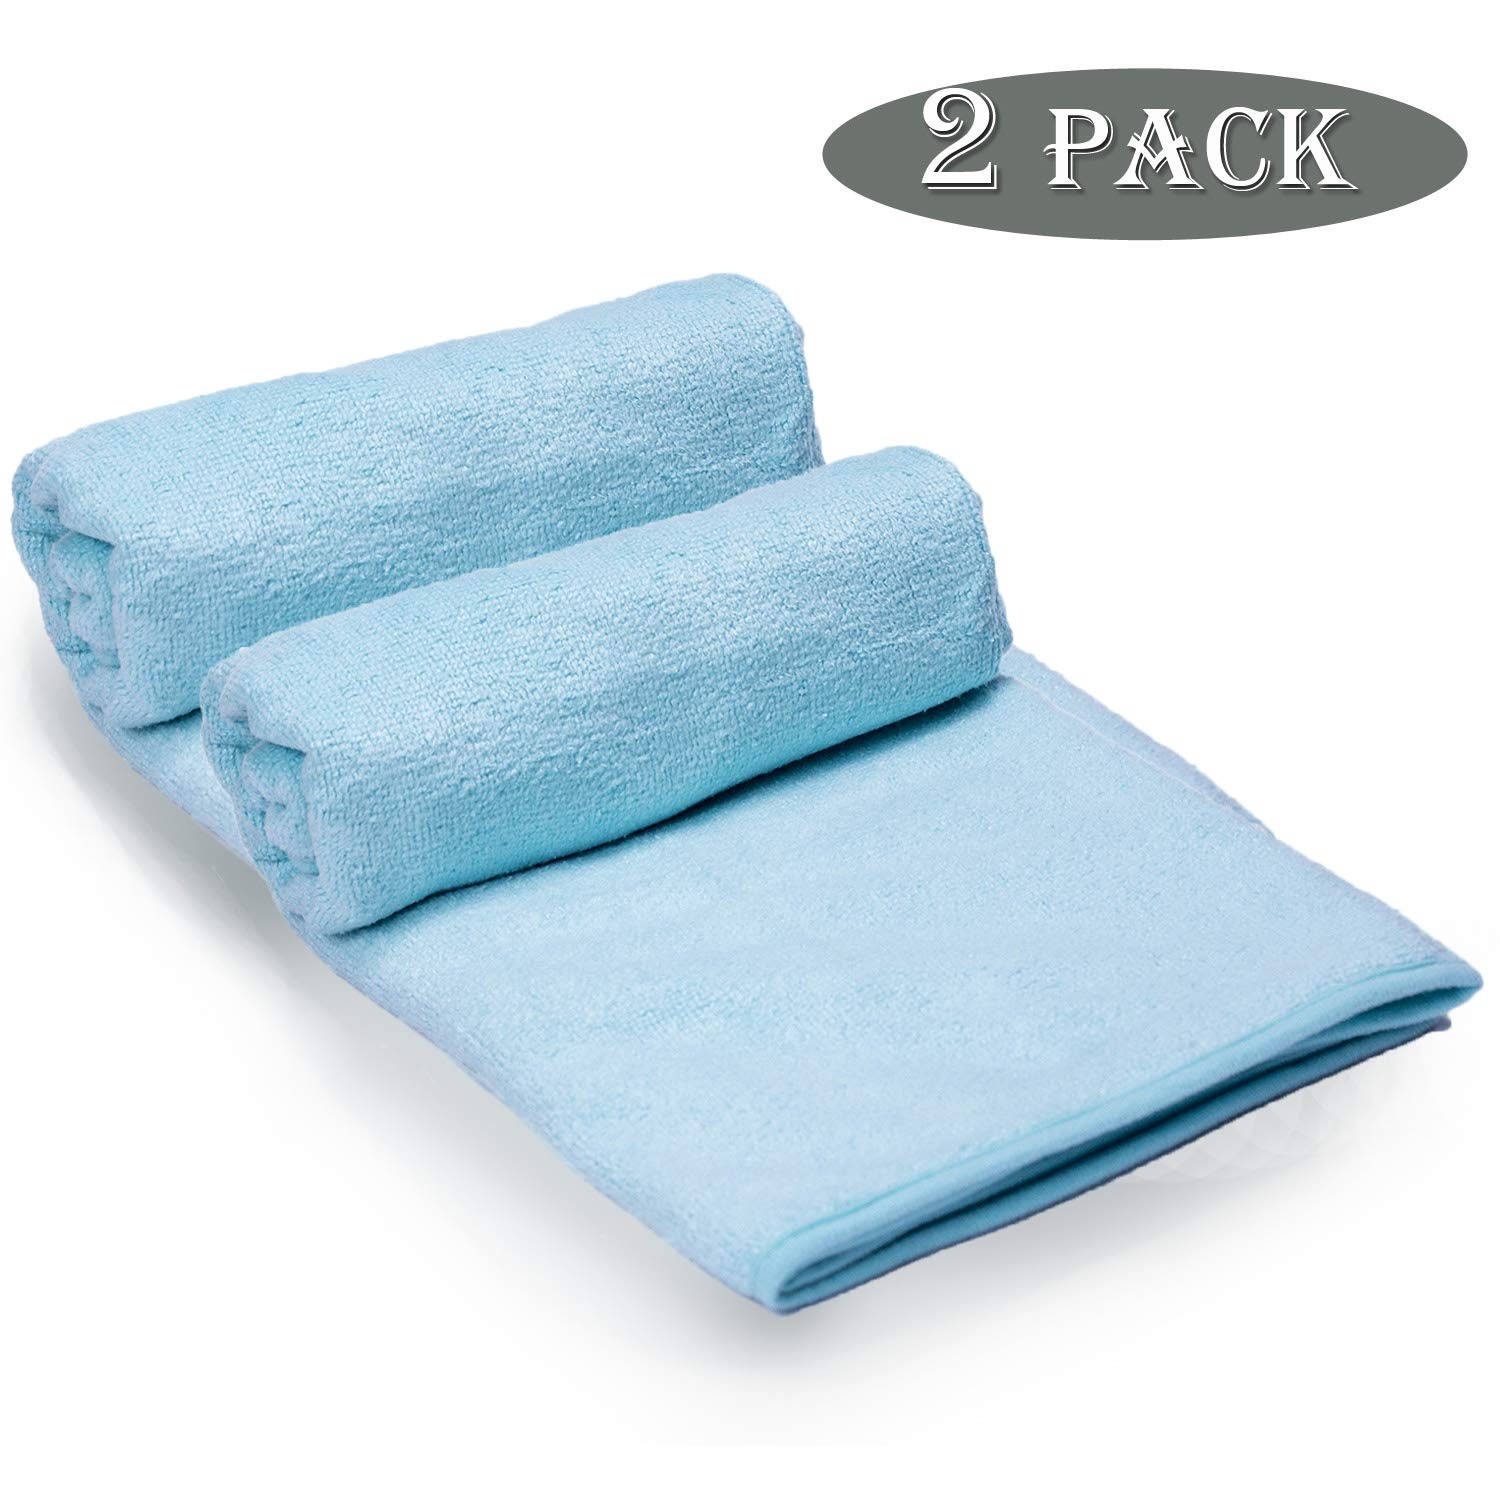 UNIC Soft Microfiber Bath Towel Sets(2 Pack,27×55 Inches), Lightweight Absorbent Quick Drying Antibacterial Multipurpose Pool Gym Beach Home Bathroom Towels(Light Blue)